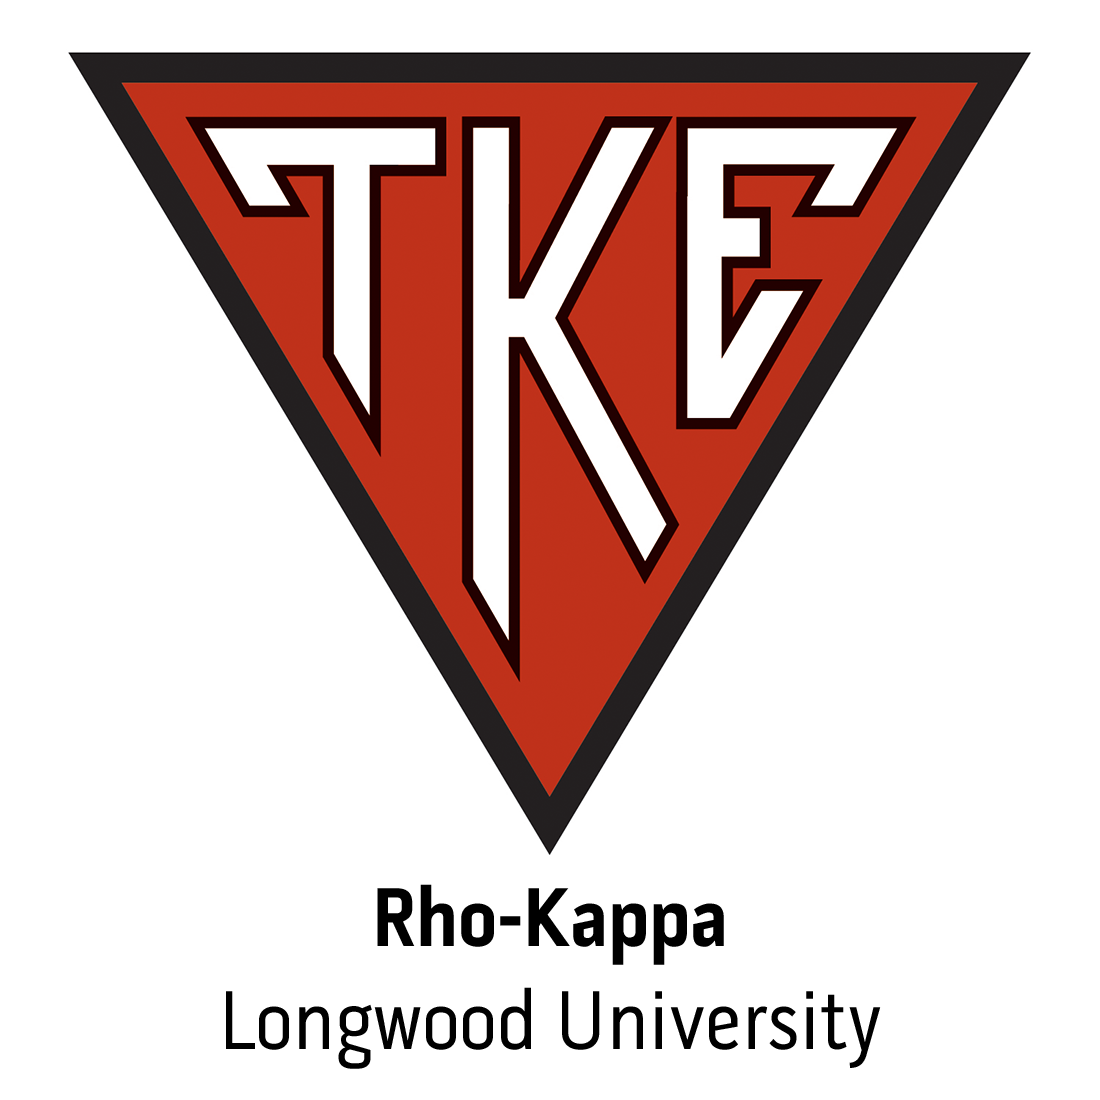 Rho-Kappa Chapter at Longwood University